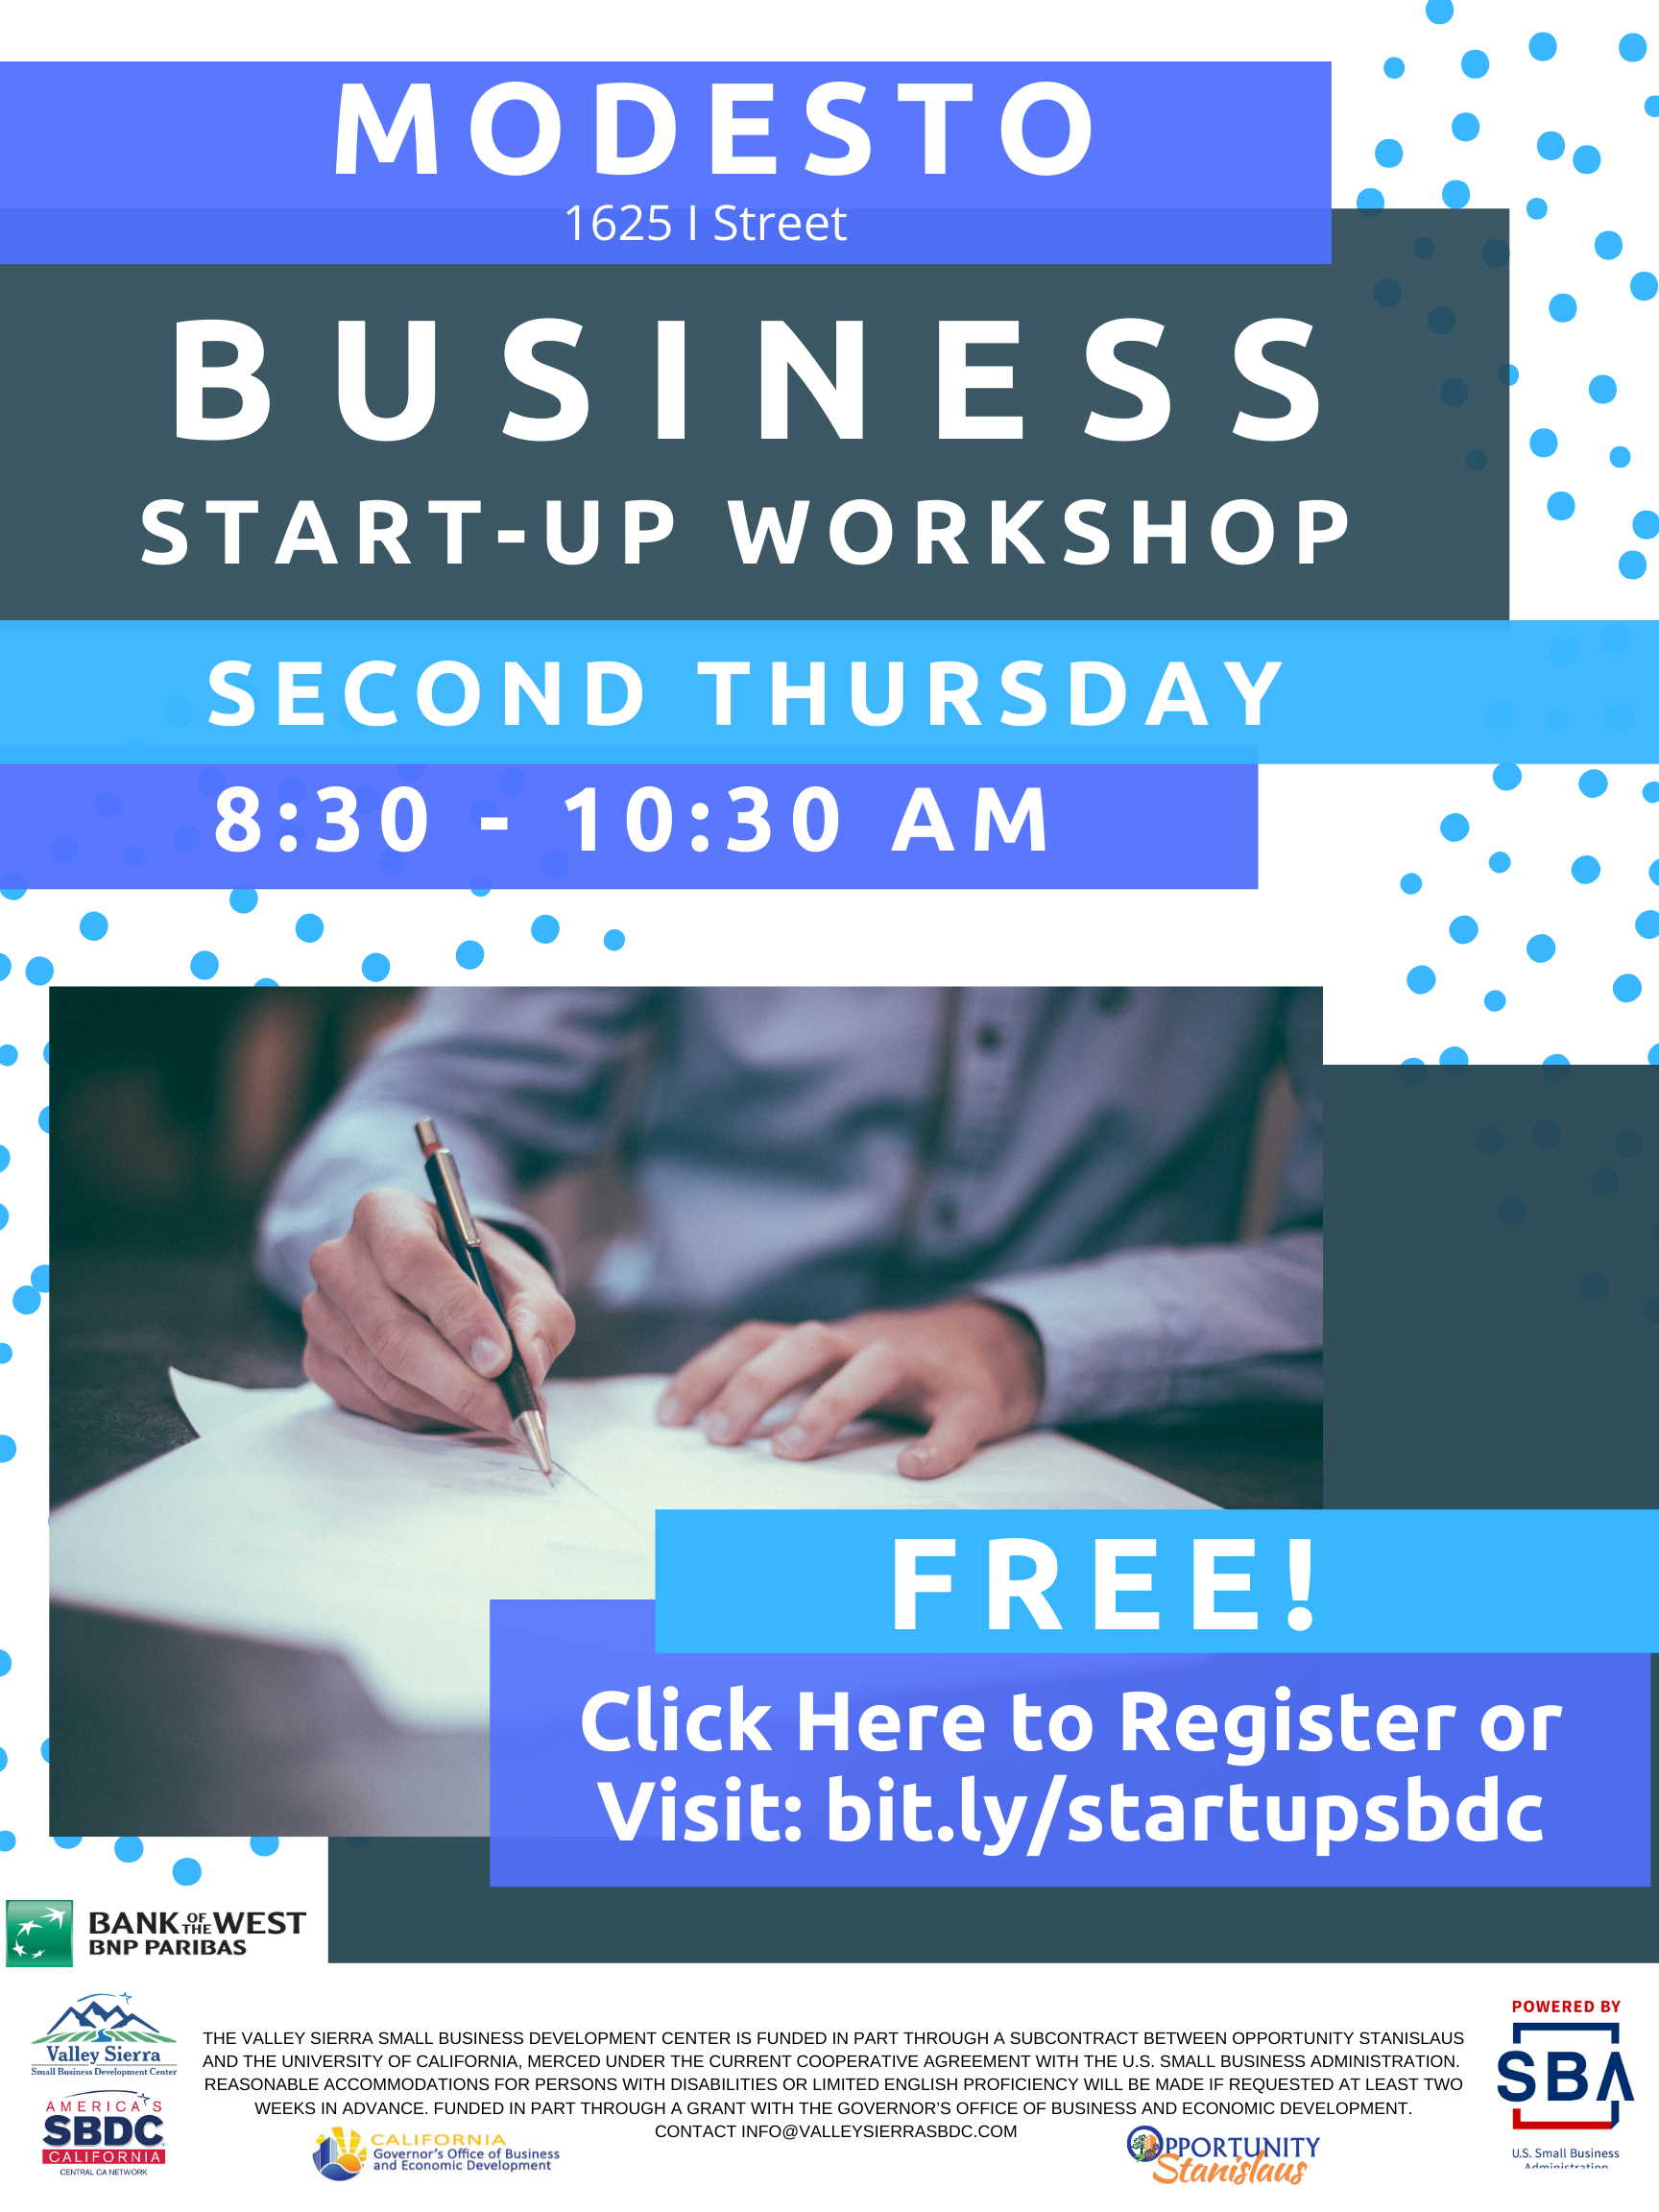 Event Flyer, Modesto Business Start Up, Second Thursday at the Valley Sierra SBDC. FREE.